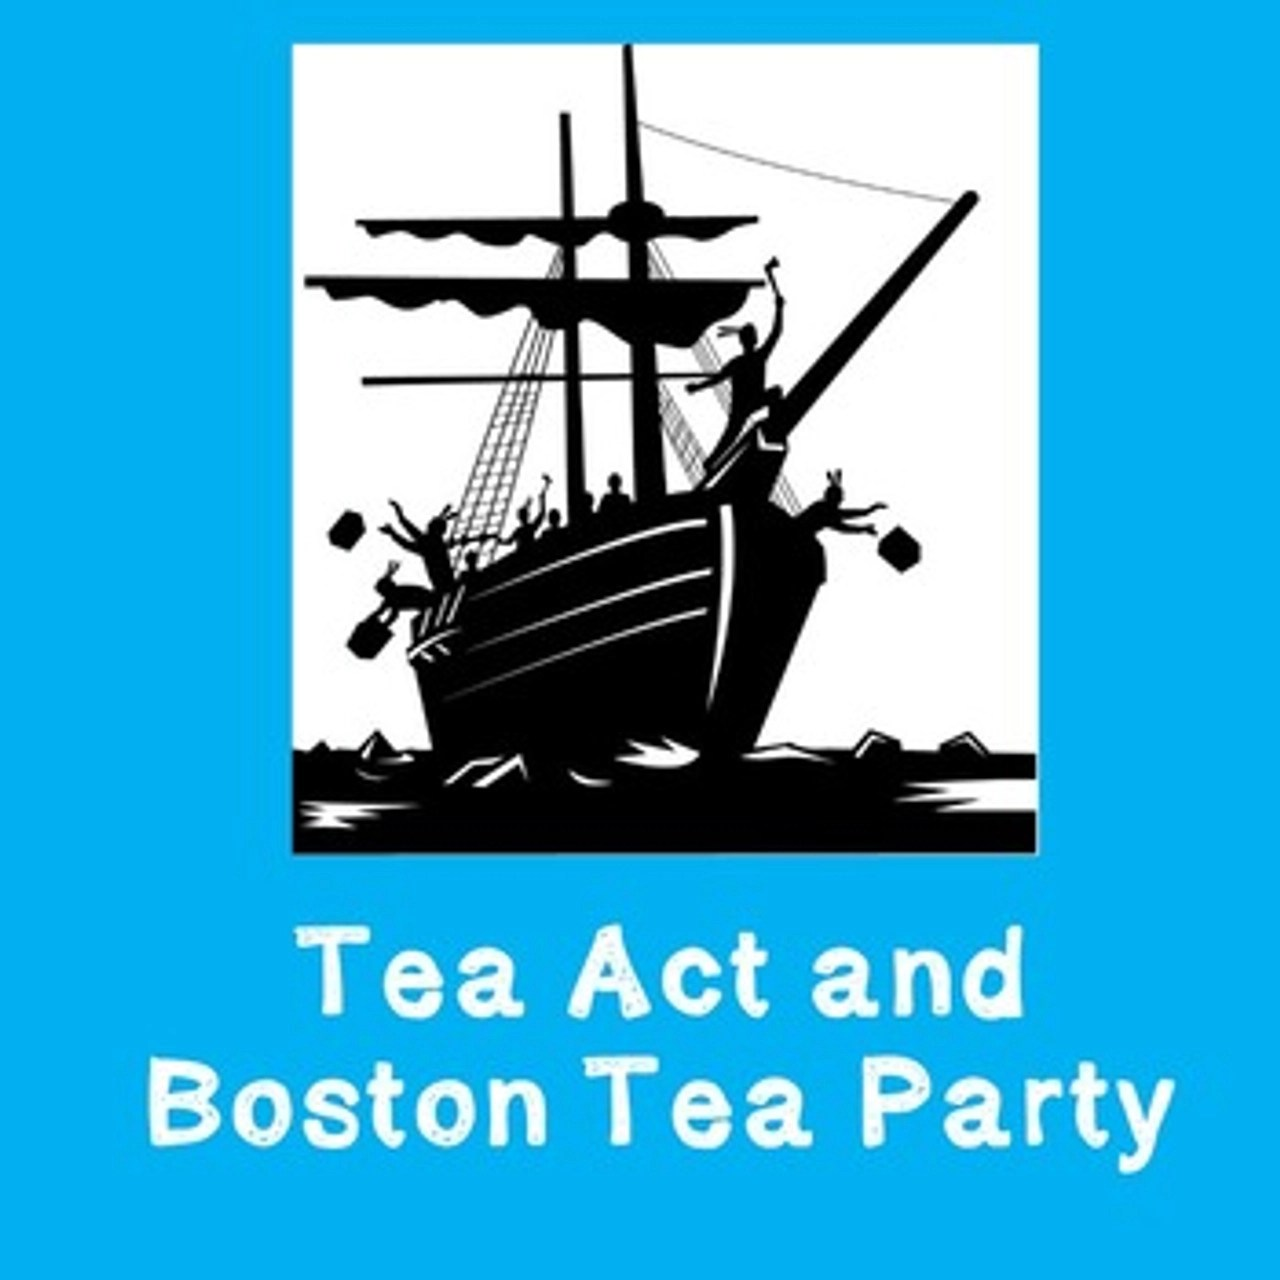 hight resolution of Tea Act and Boston Tea Party - Amped Up Learning